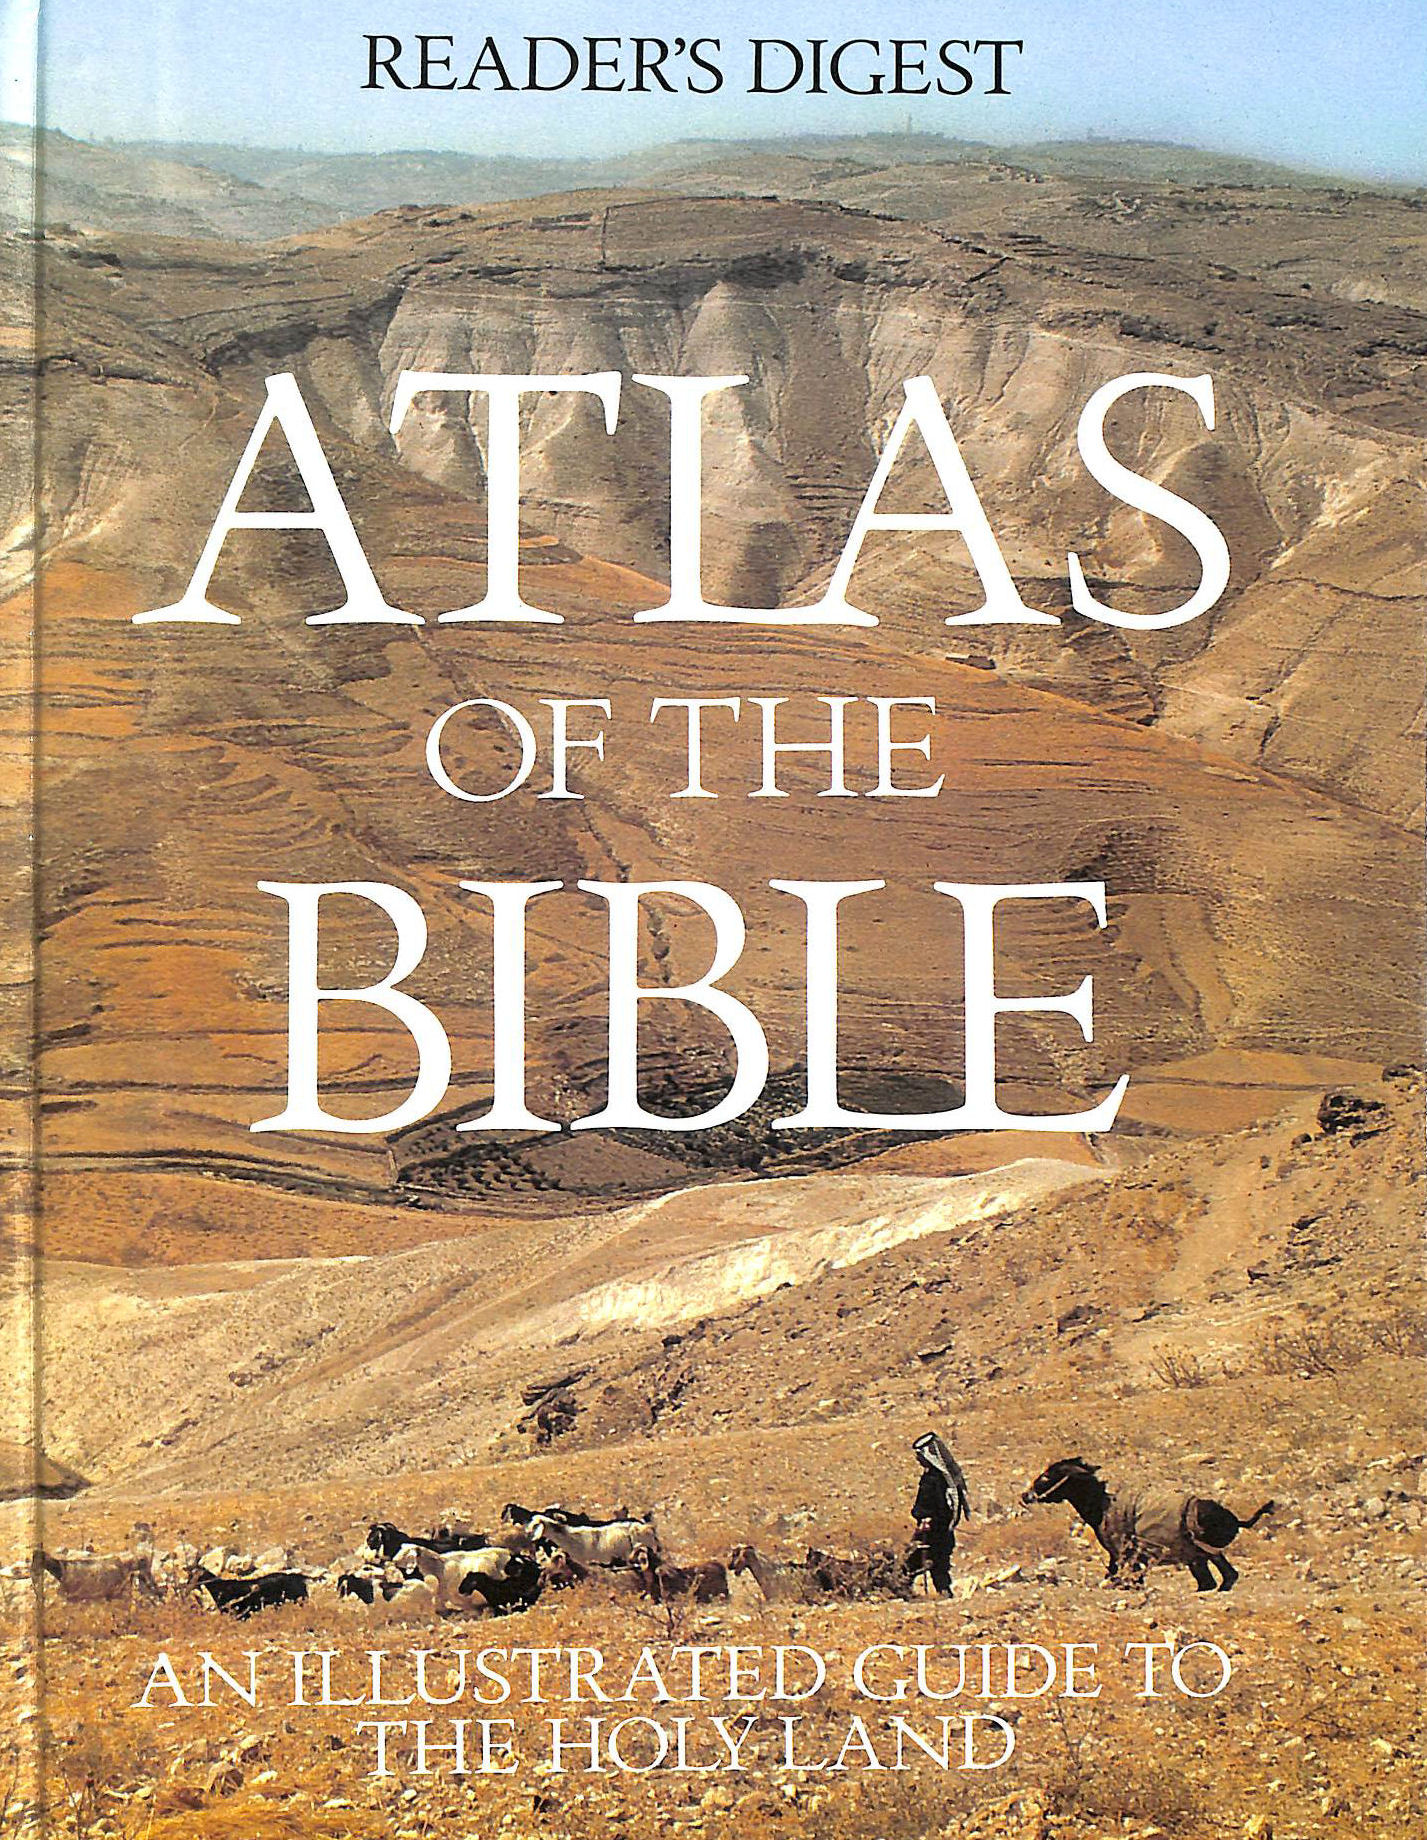 Image for Reader's Digest Atlas Of The Bible: An Illustrated Guide To The Holy Land